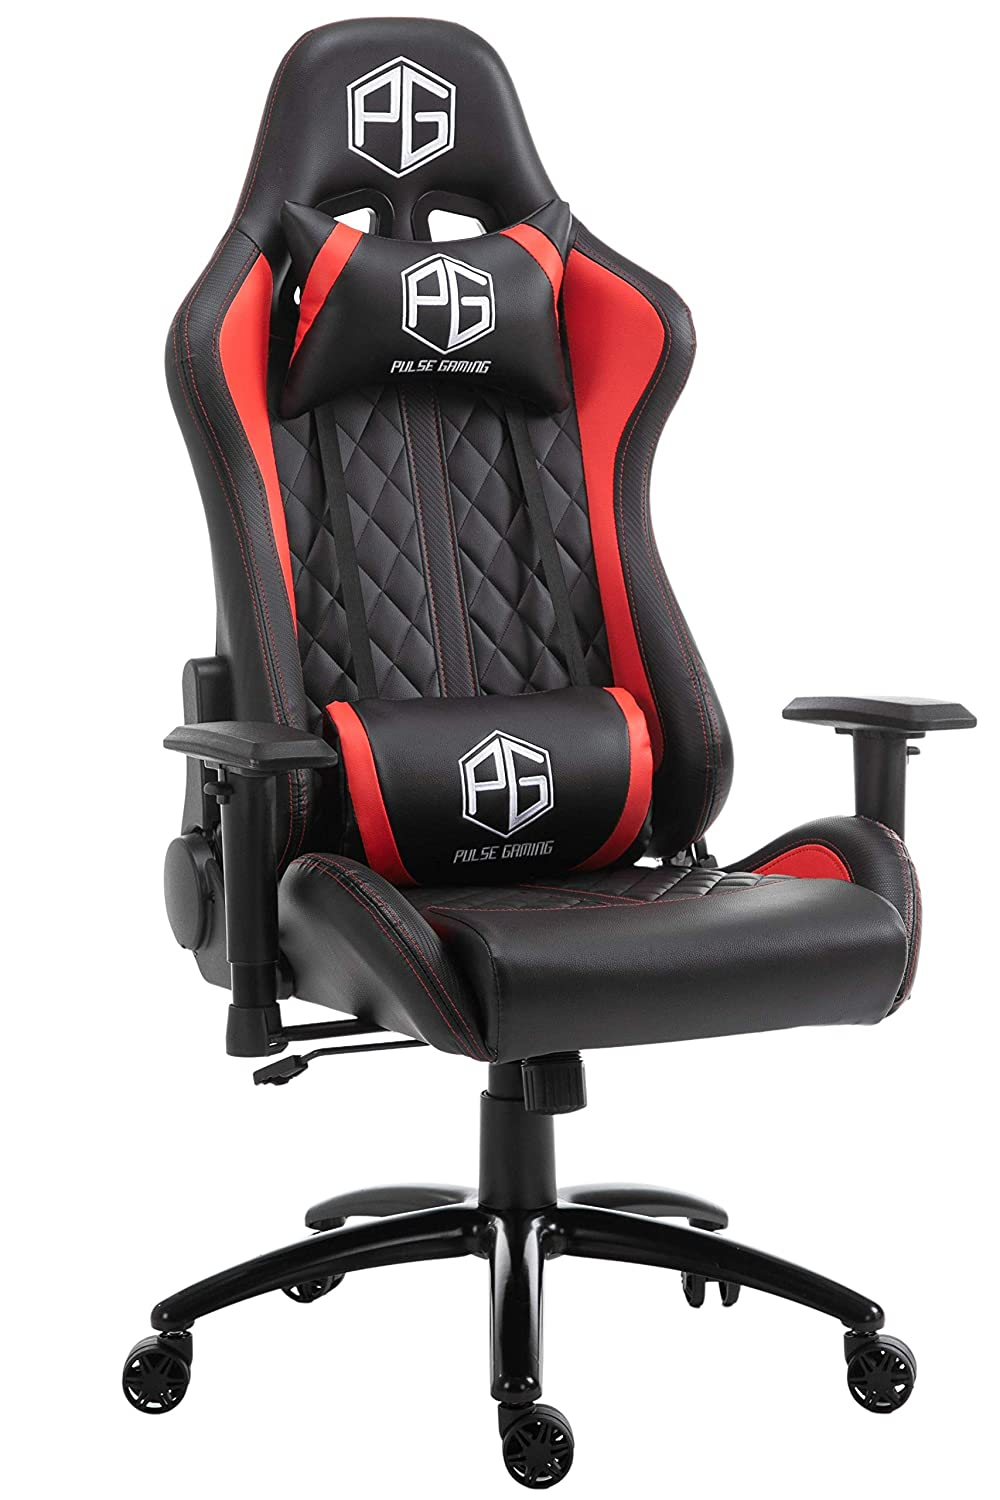 Best Gaming Chair India 2021 Maintain Health While Gaming Gaming Chair Chair Games